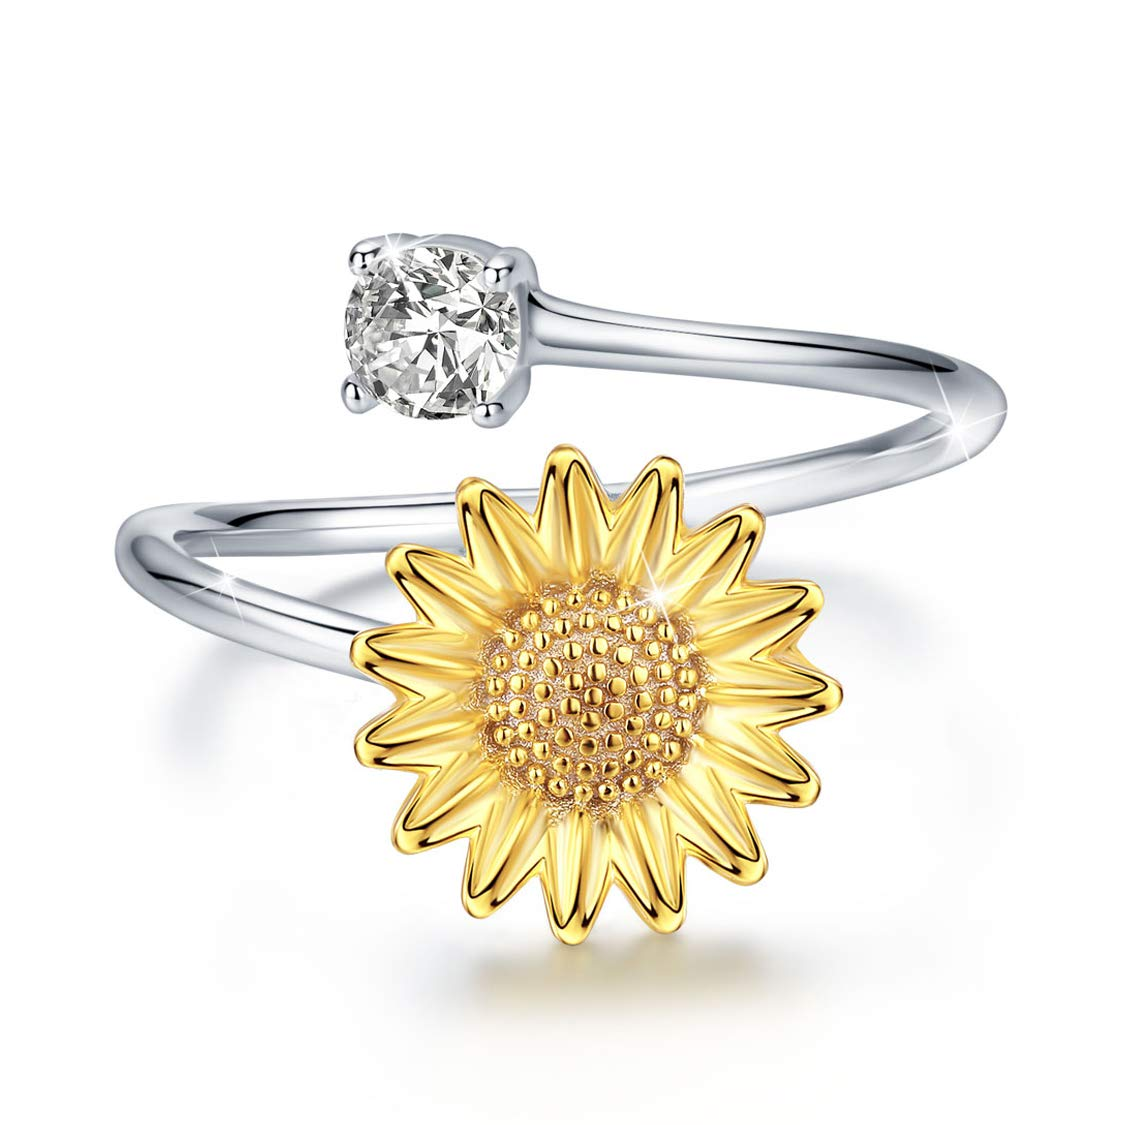 Sunflower Ring S925 Sterling Silver Adjustable Dainty Gold Flower Open Band with Cubic Zirconia Stacking Mid Finger Thumb Rings Jewelry Gifts for Women Promise Size7/8/9